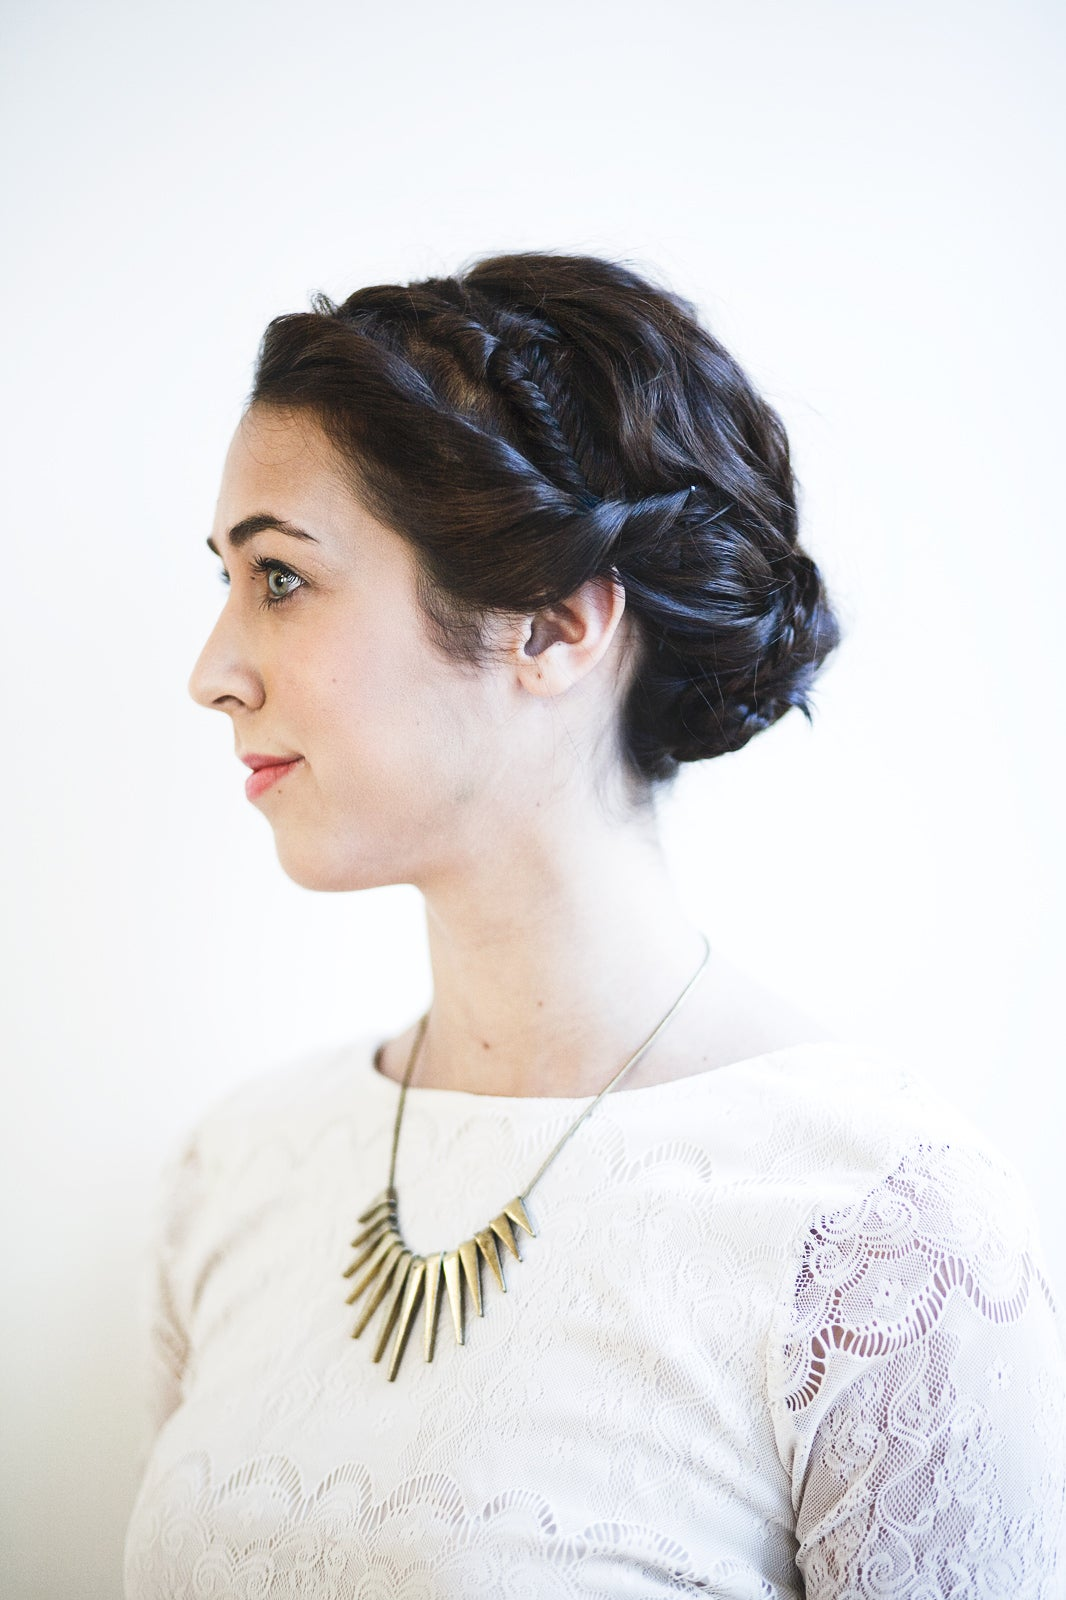 Short Hair Updos - How To Style Cropped Looks